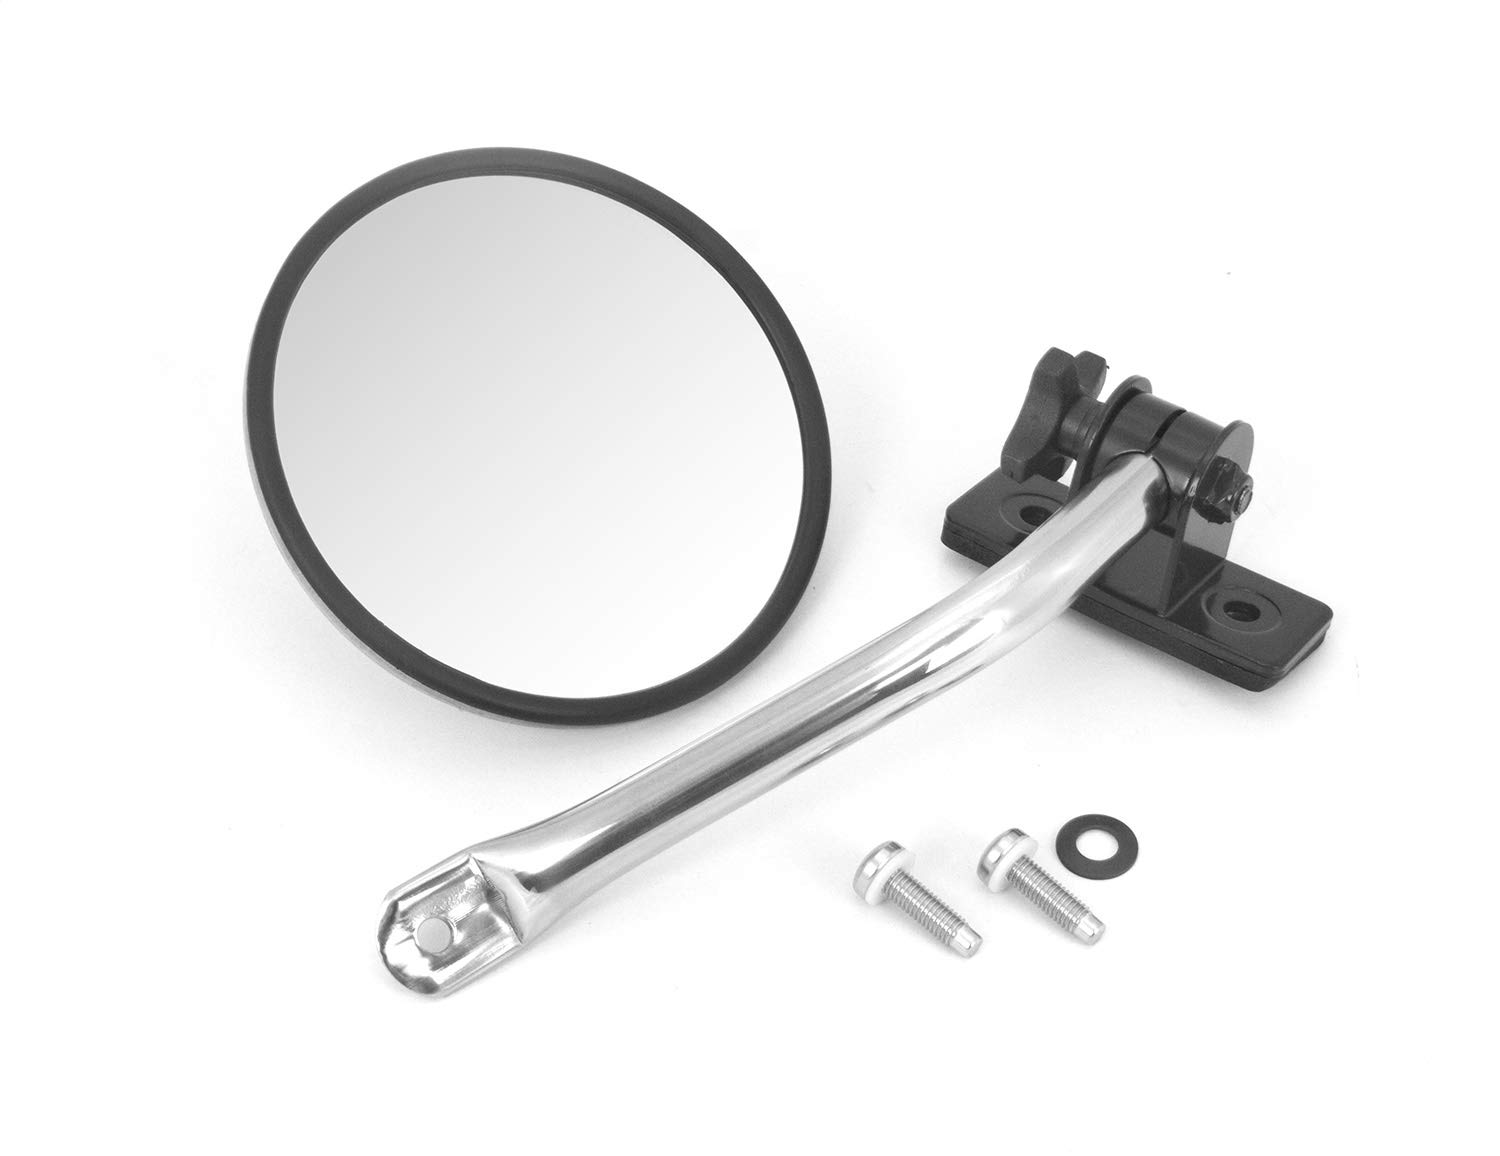 Rugged Ridge 11026.10 Silver Stainless Steel Quick Release Mirror Relocation Kit